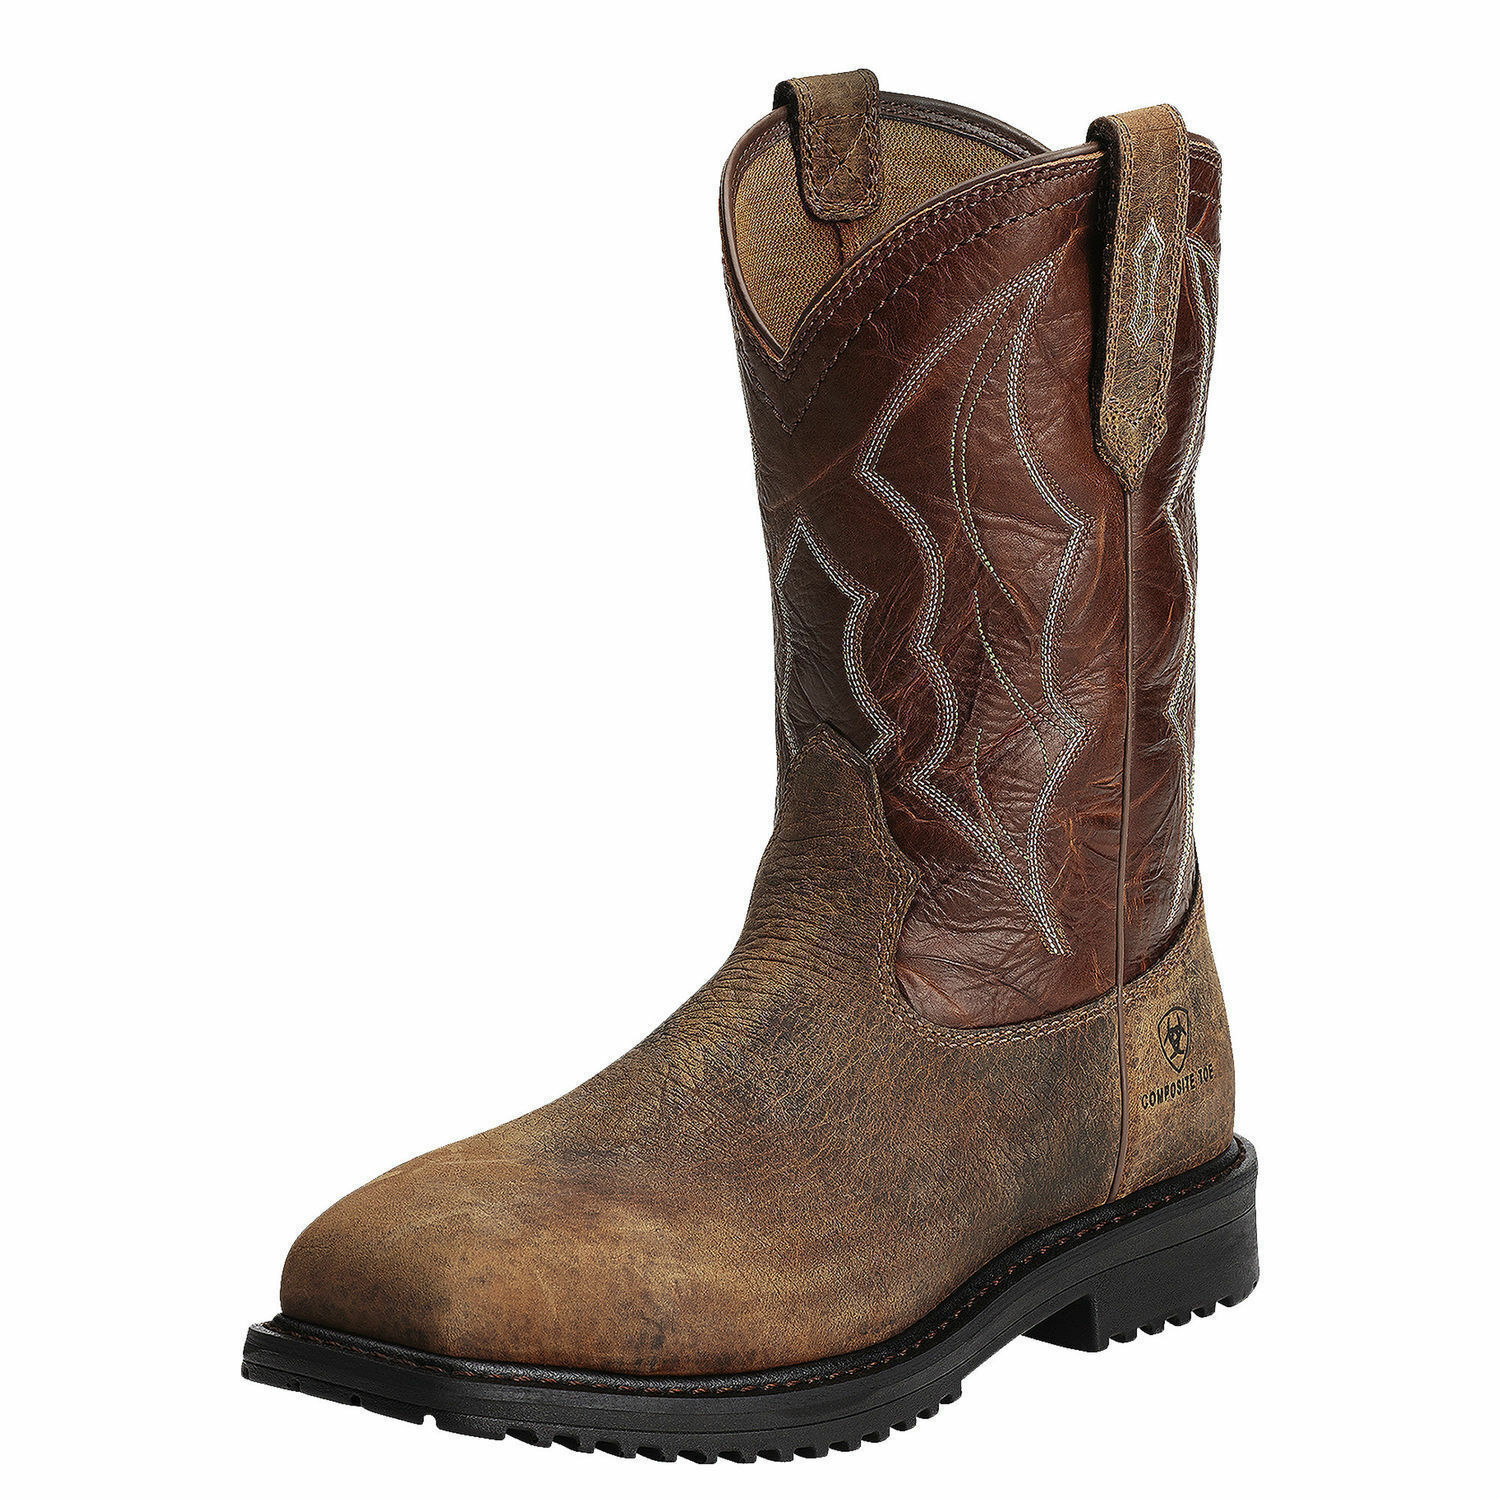 Ariat 10012930 Rigtek Safety Toe 11  Pull On EH Rated Wide Square Toe Work Boots